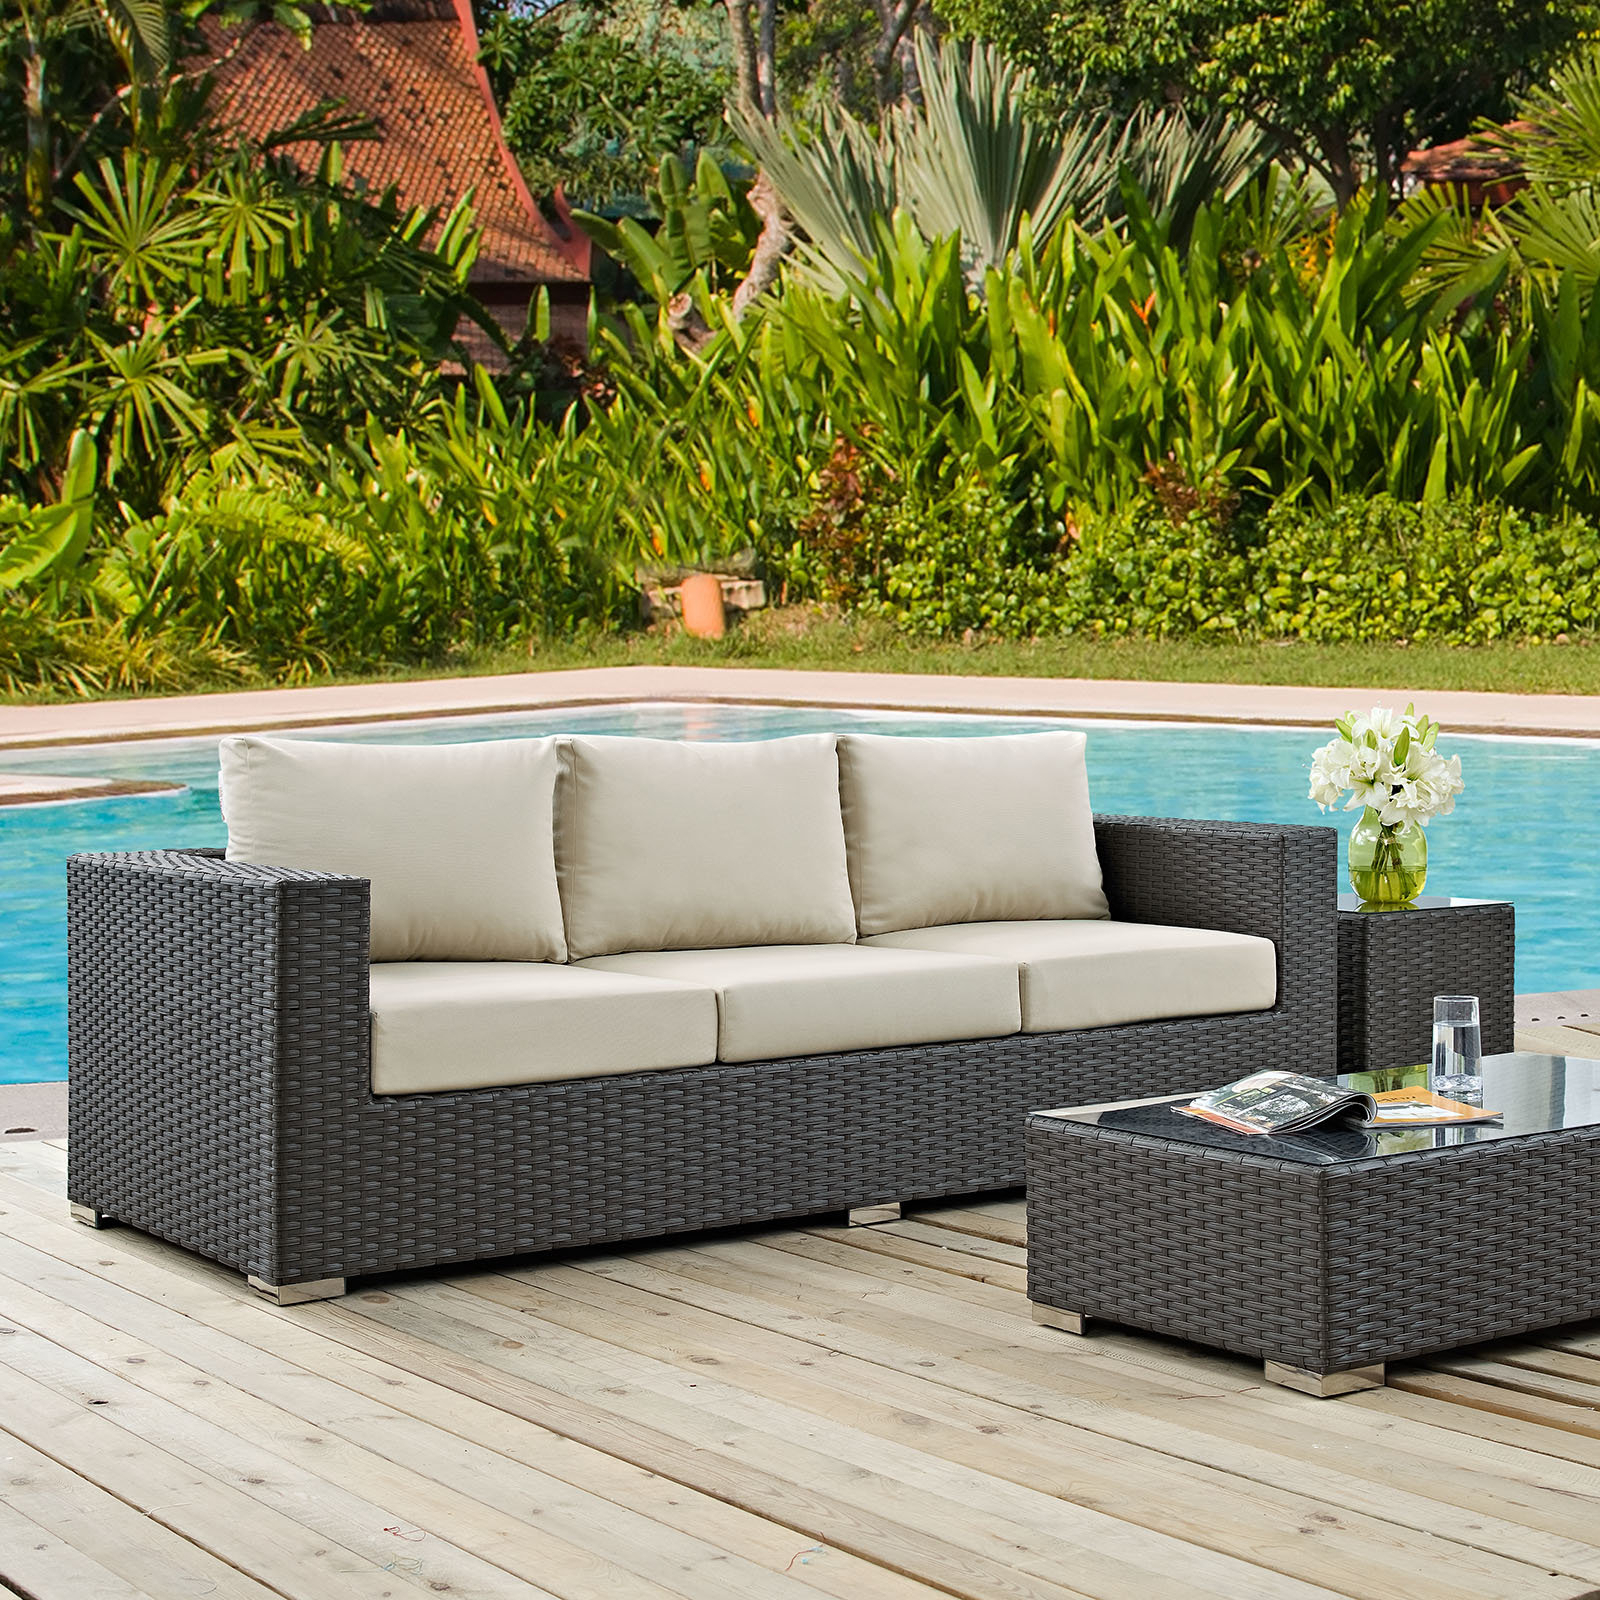 2020 Stapleton Wicker Resin Patio Sofas With Cushions Intended For Tripp Sofa With Cushions (View 2 of 20)